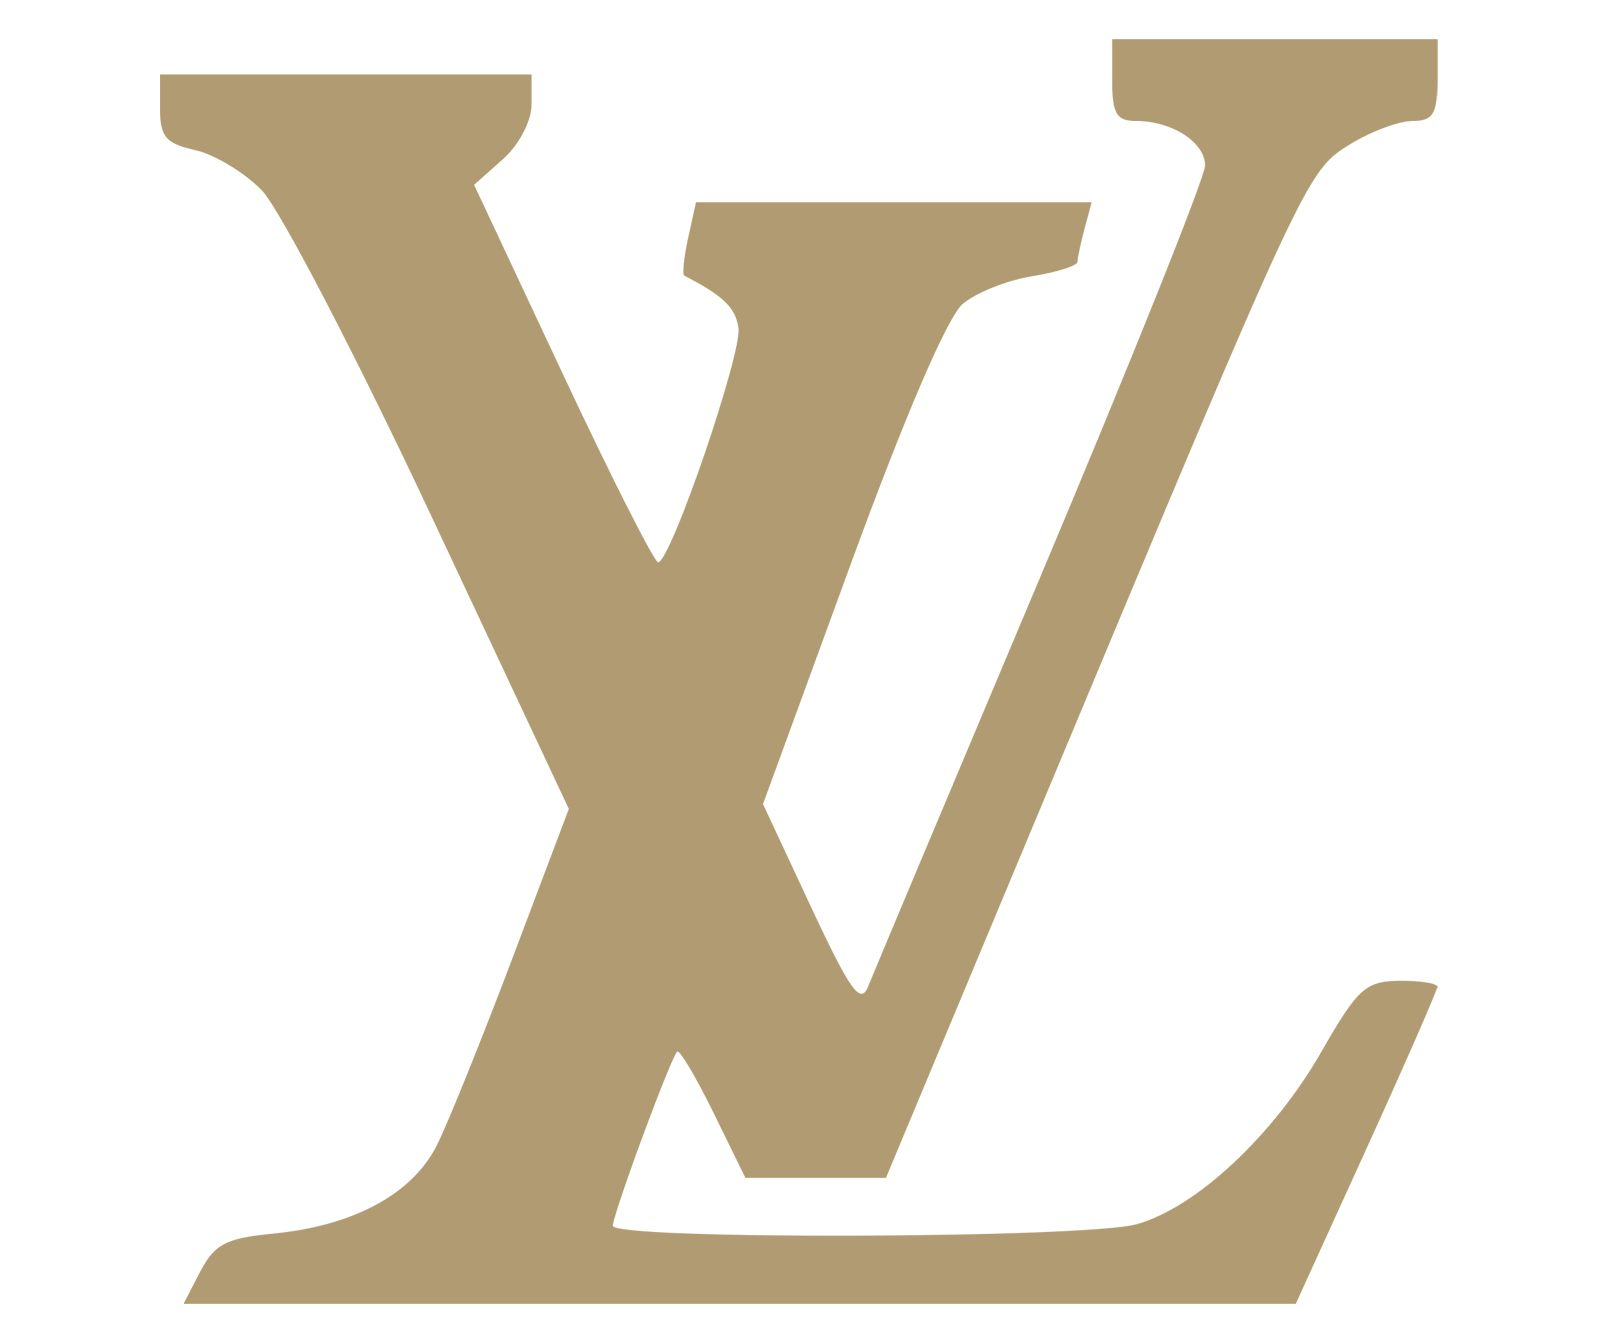 Louis Vuitton Logo - Louis Vuitton Logo, Louis Vuitton Symbol Meaning, History and Evolution